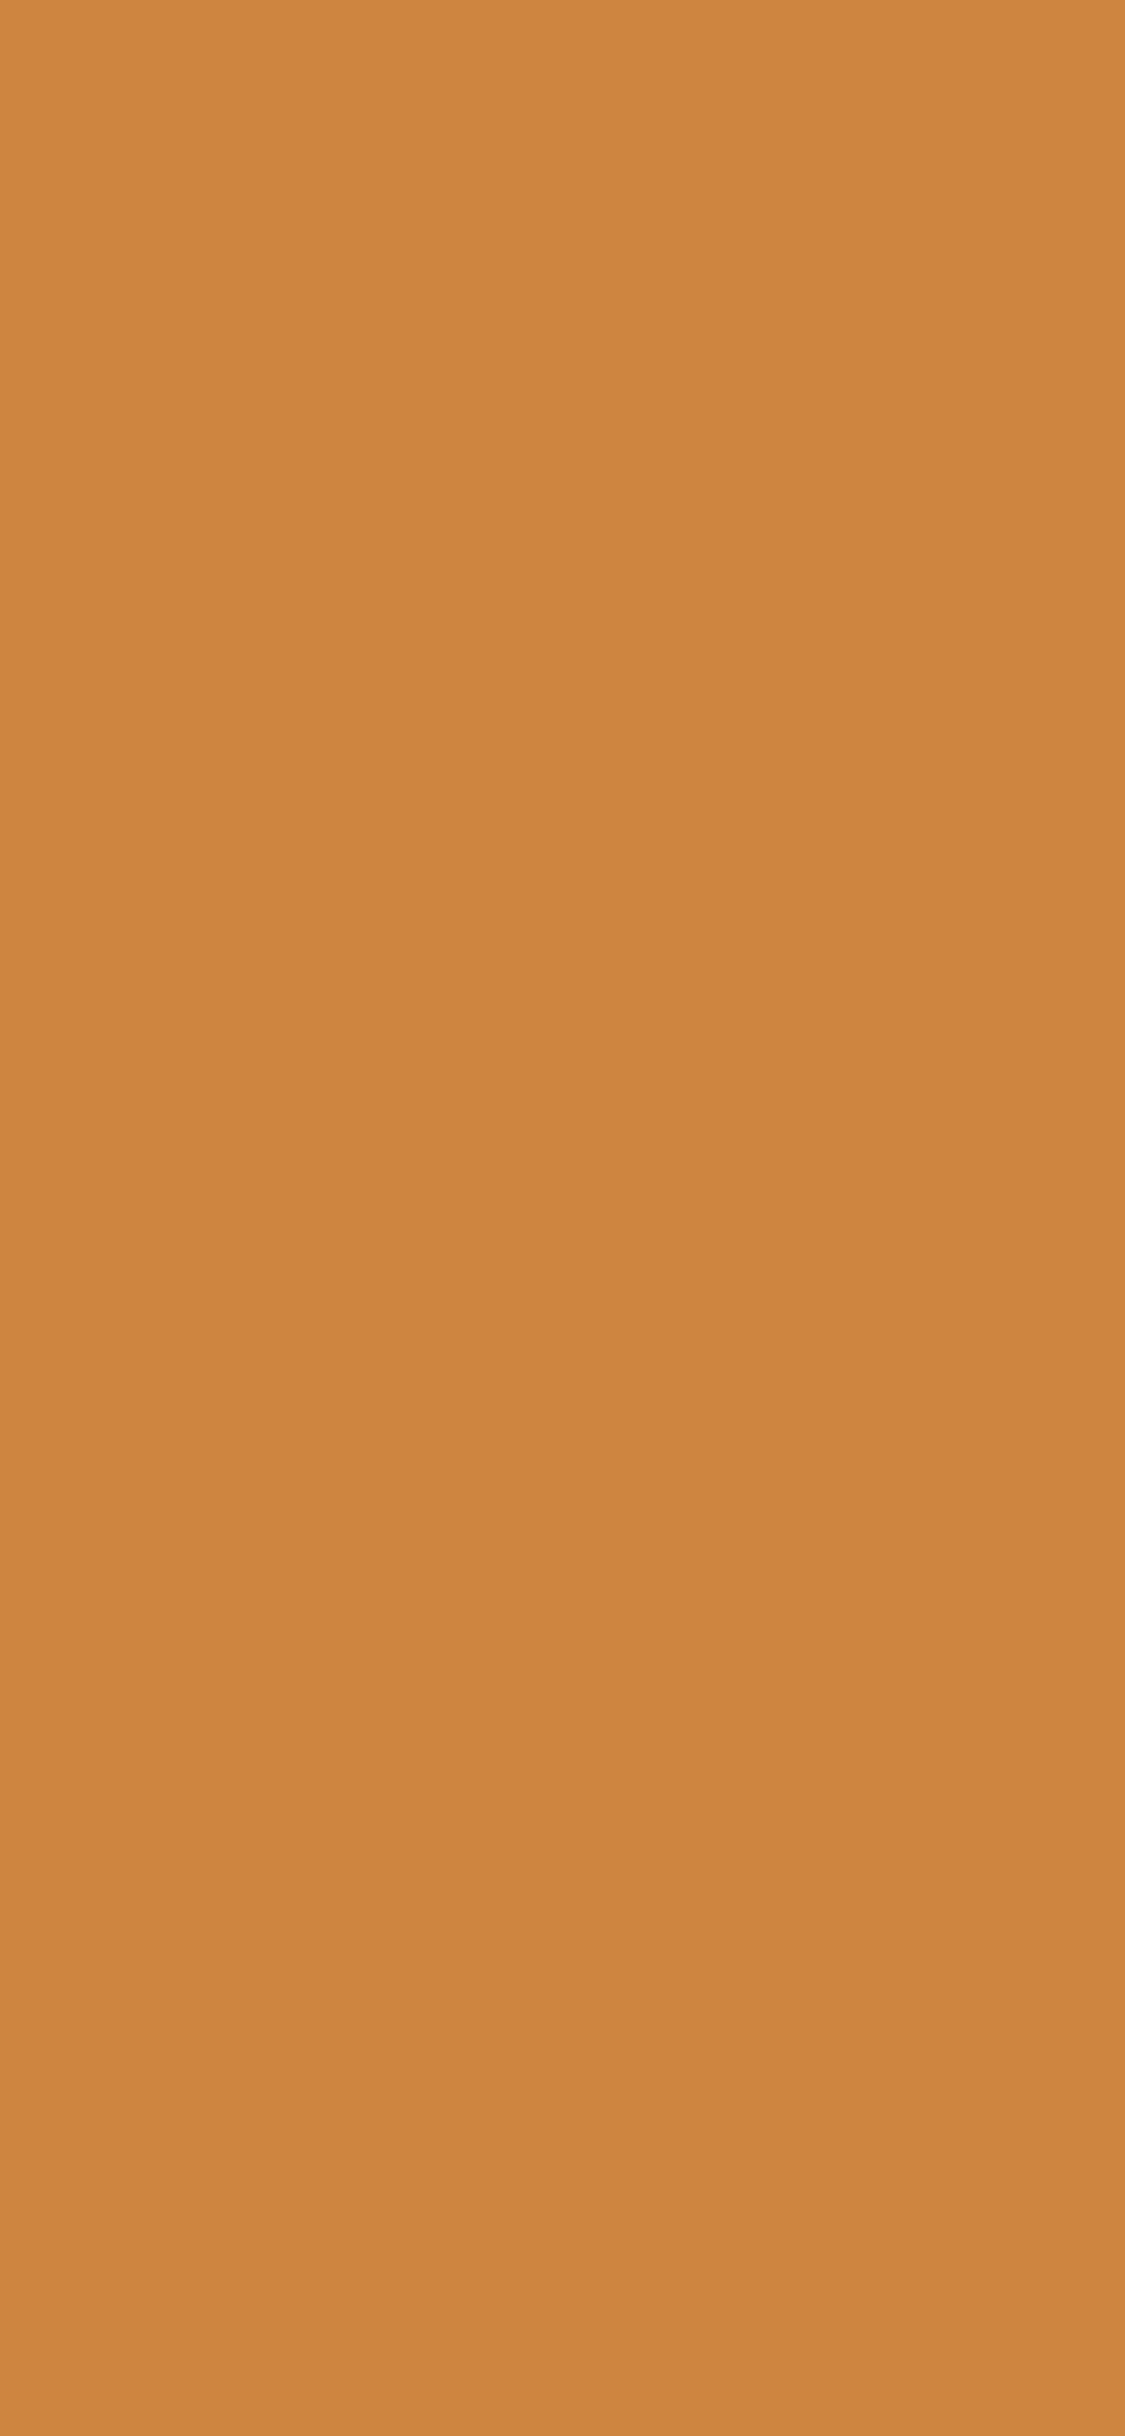 1125x2436 Peru Solid Color Background